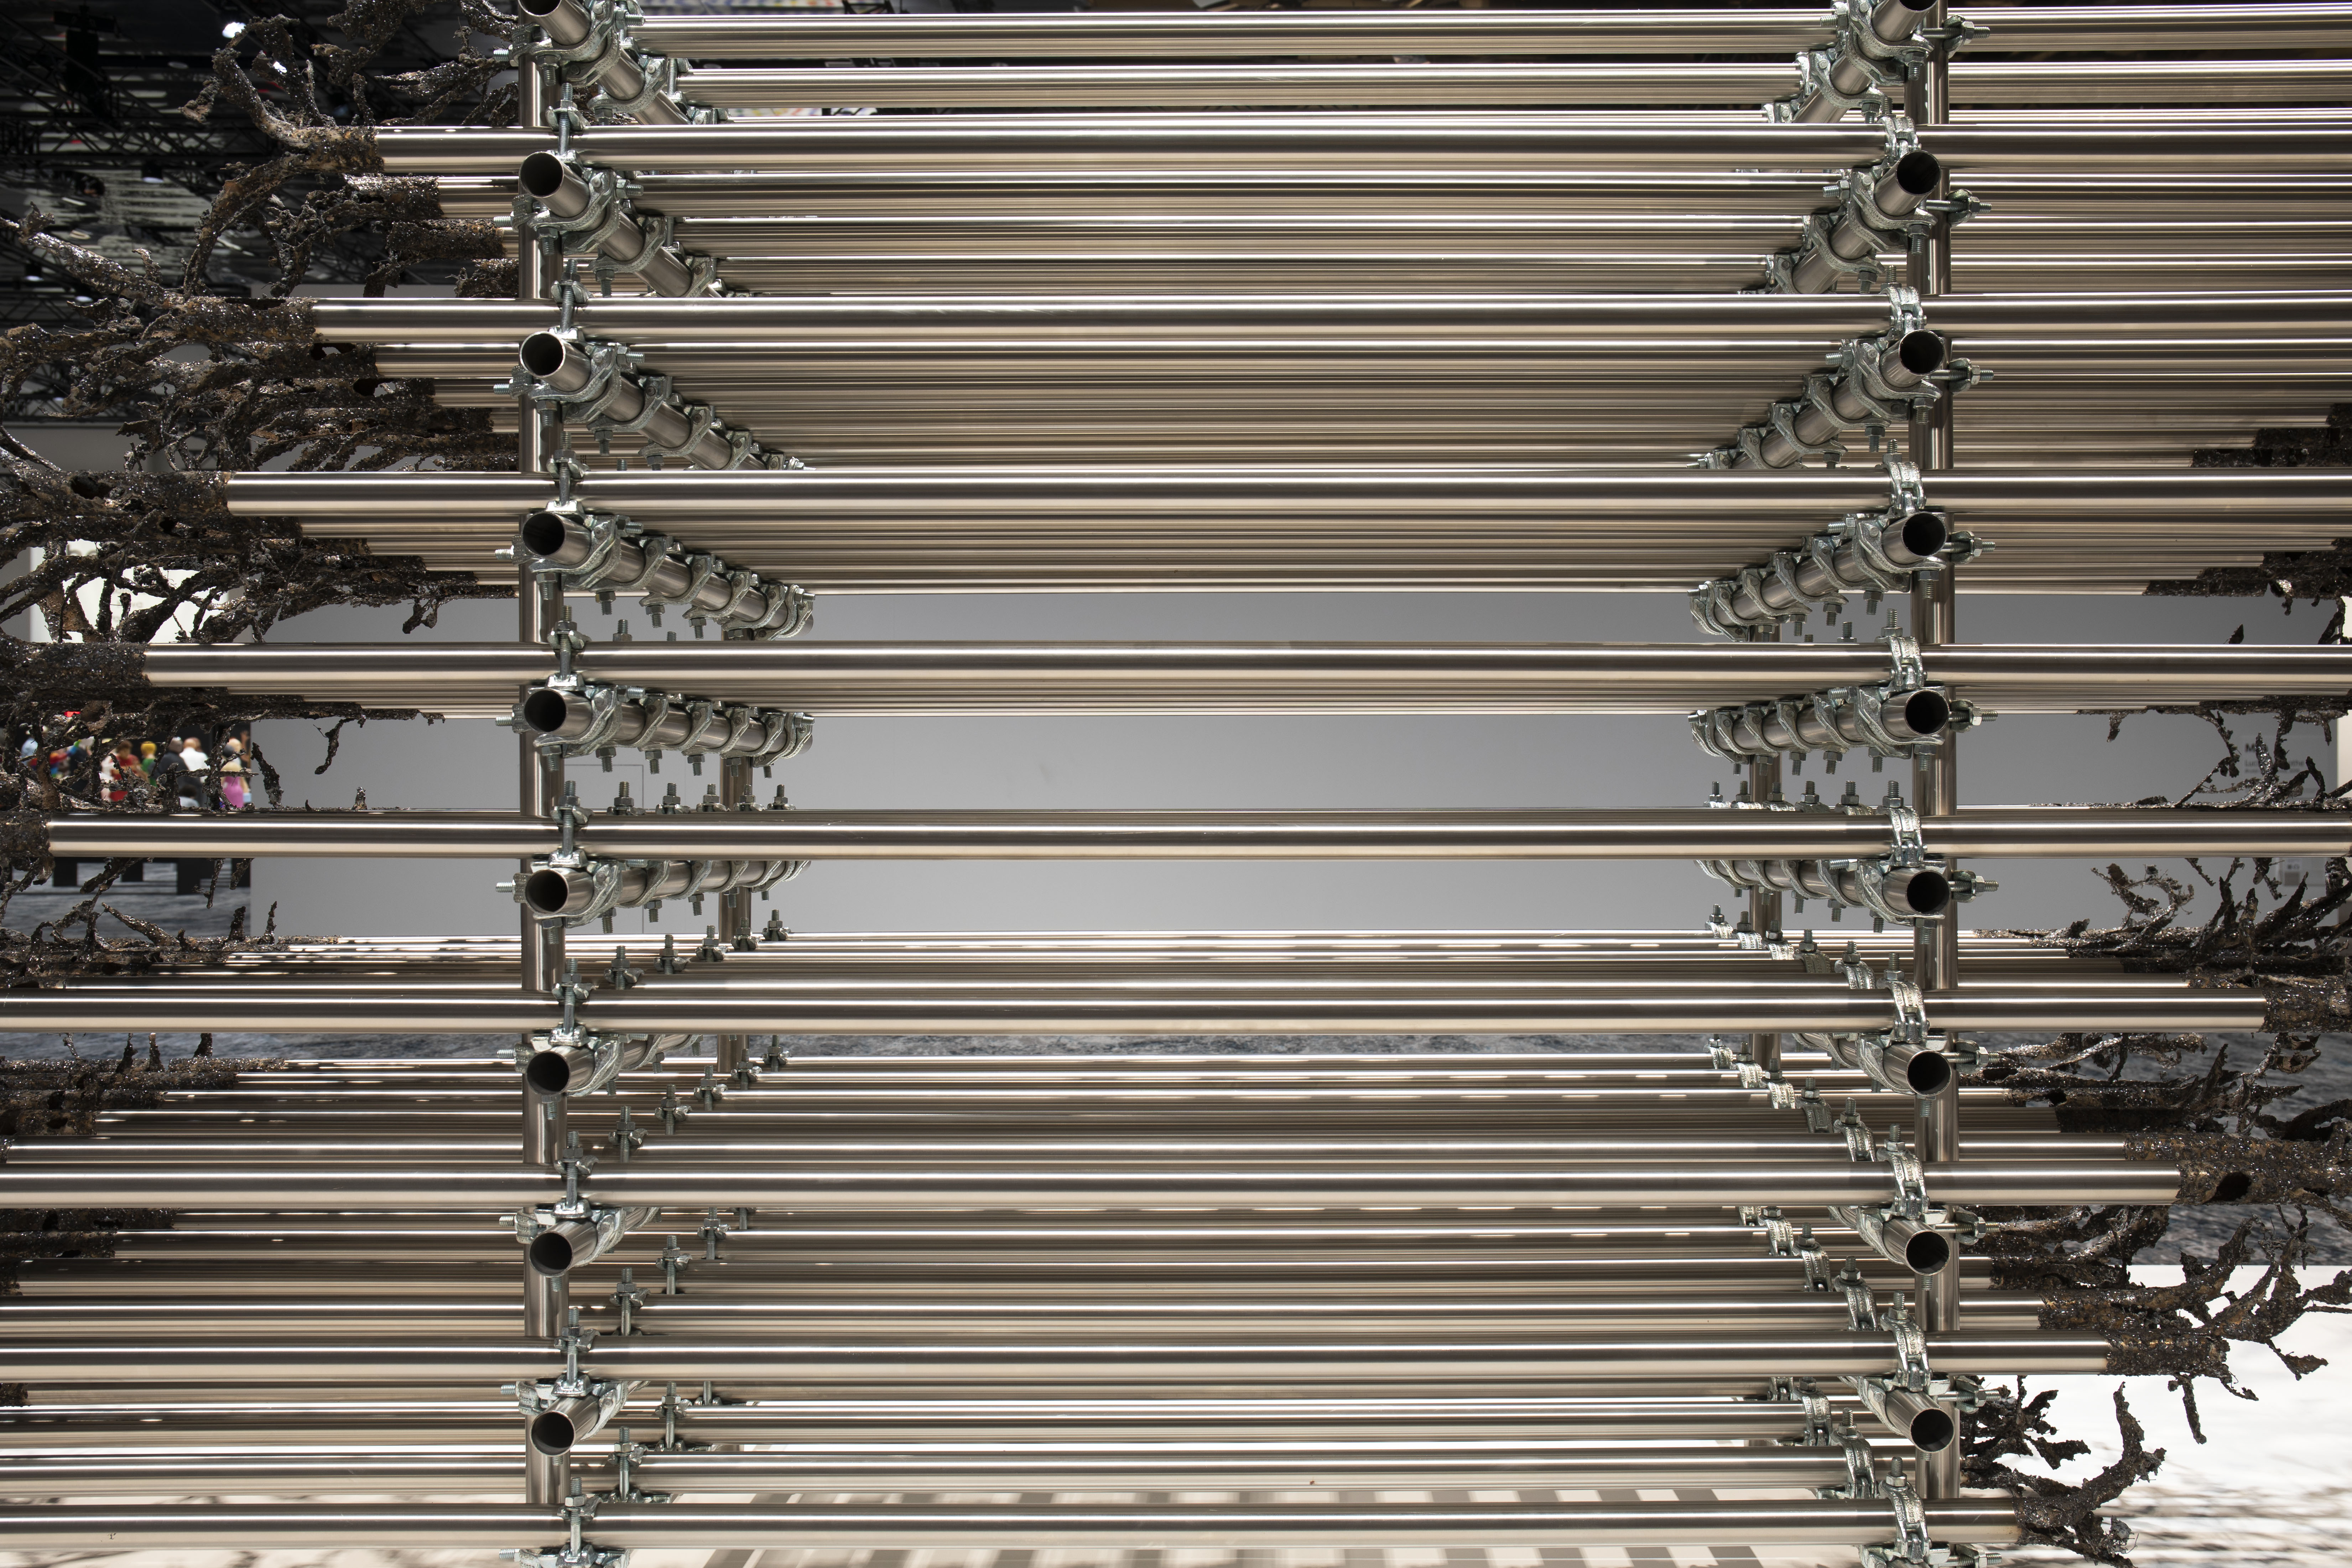 Luciana Lamothe.<em> Brutal Ambivalence</em>, 2019. Steel pipes and clamps, 76 3/4 x 236 1/4 x 47 1/4 inches (195 x 600 x 120 cm)